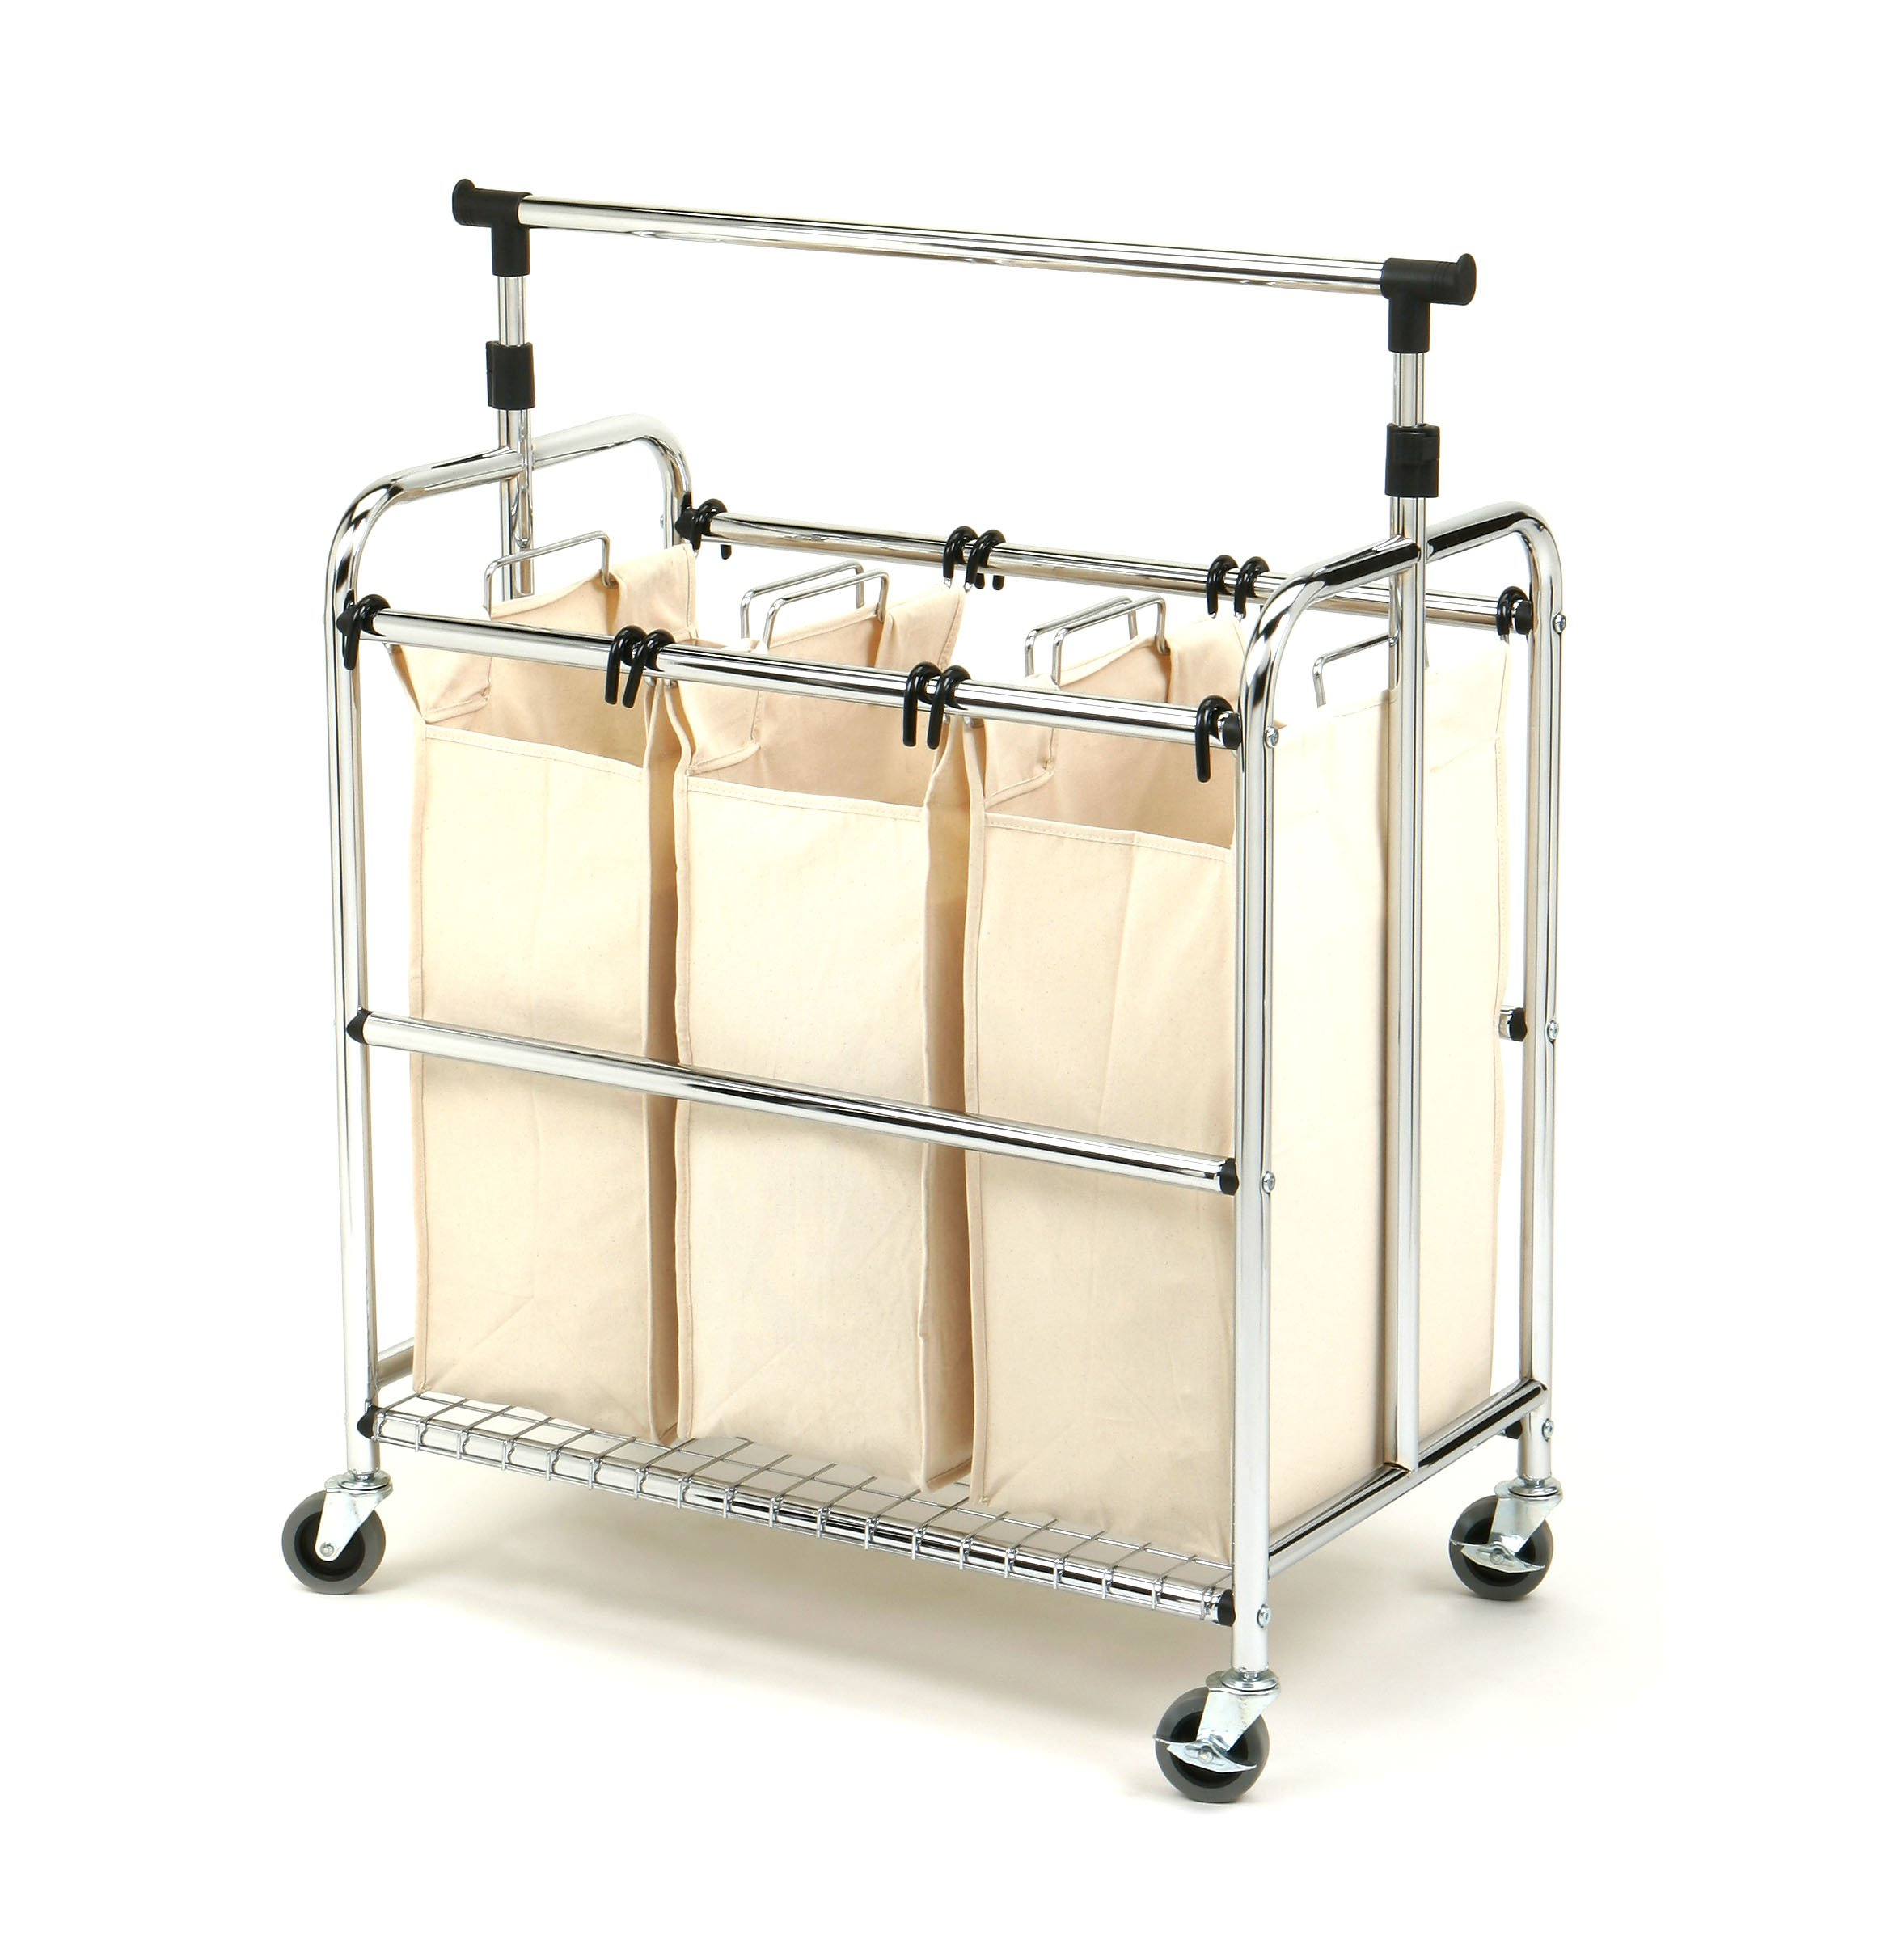 Seville Classics Mobile 3-Bag Reinforced Heavy-Duty Laundry Hamper Sorter Cart /w Clothes Rack by Seville Classics